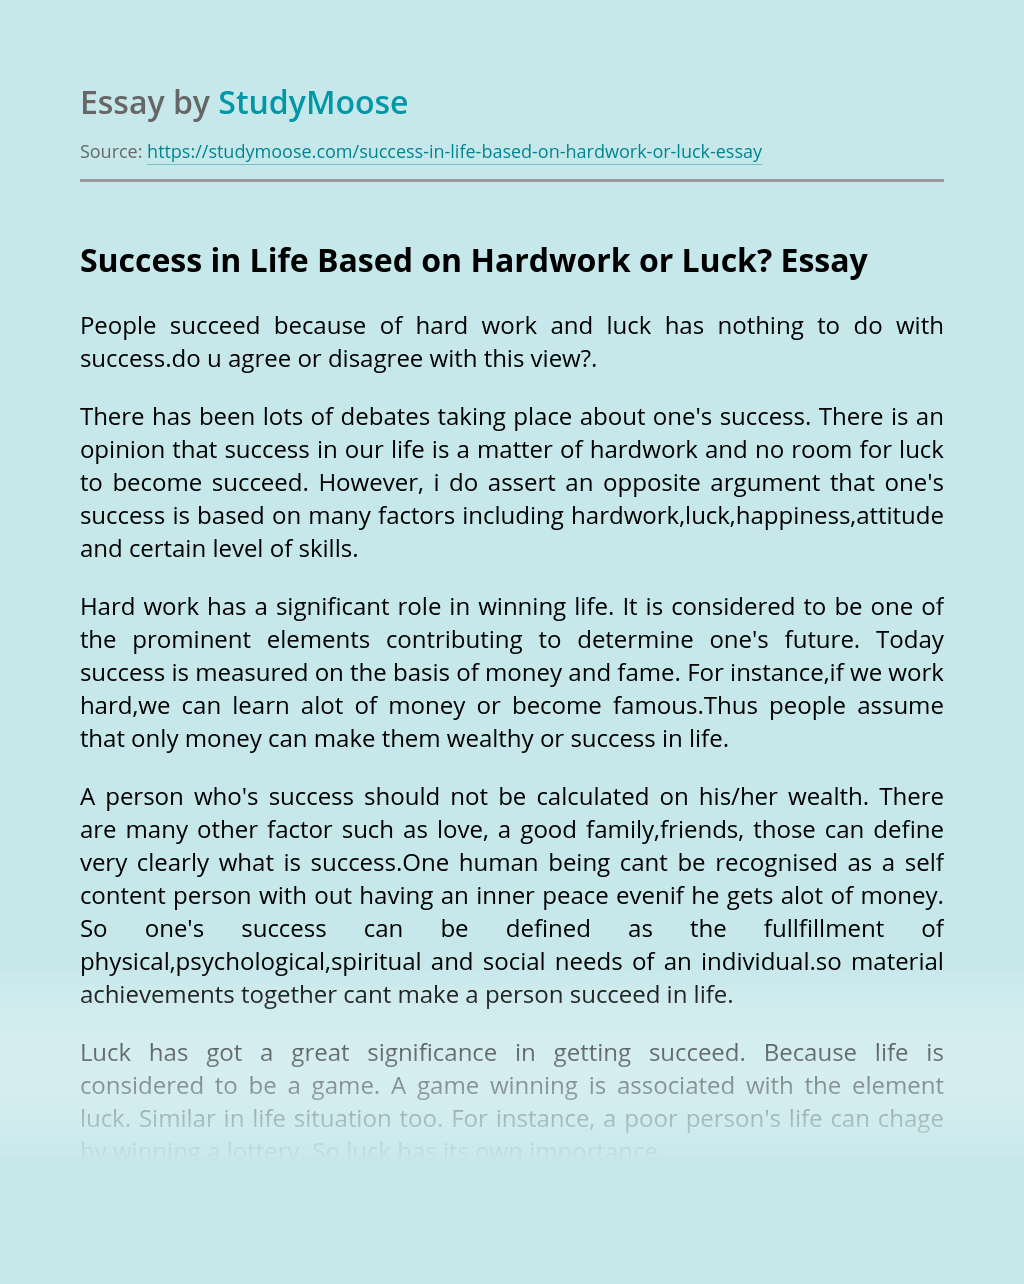 Success in Life Based on Hardwork or Luck?